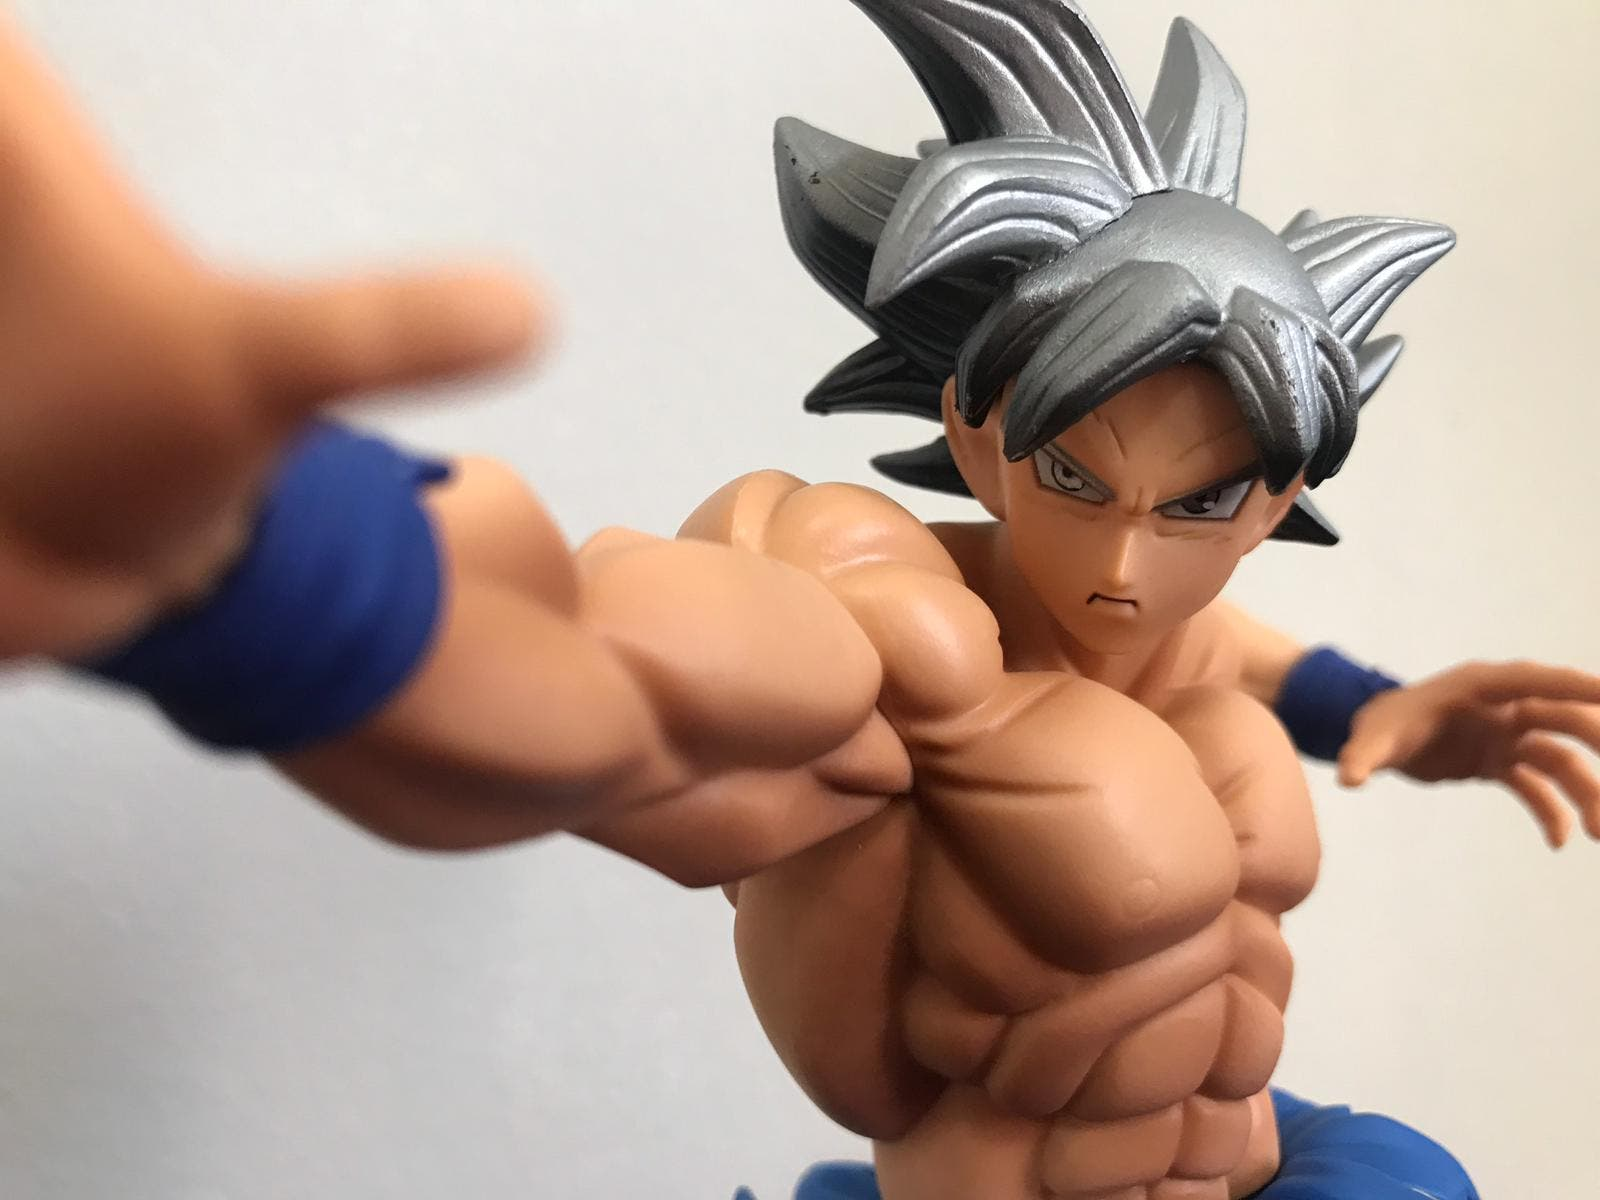 Imagen de Dragon Ball Super: Análisis figura Goku Migatte No Gokui in Flight Fighting Banpresto